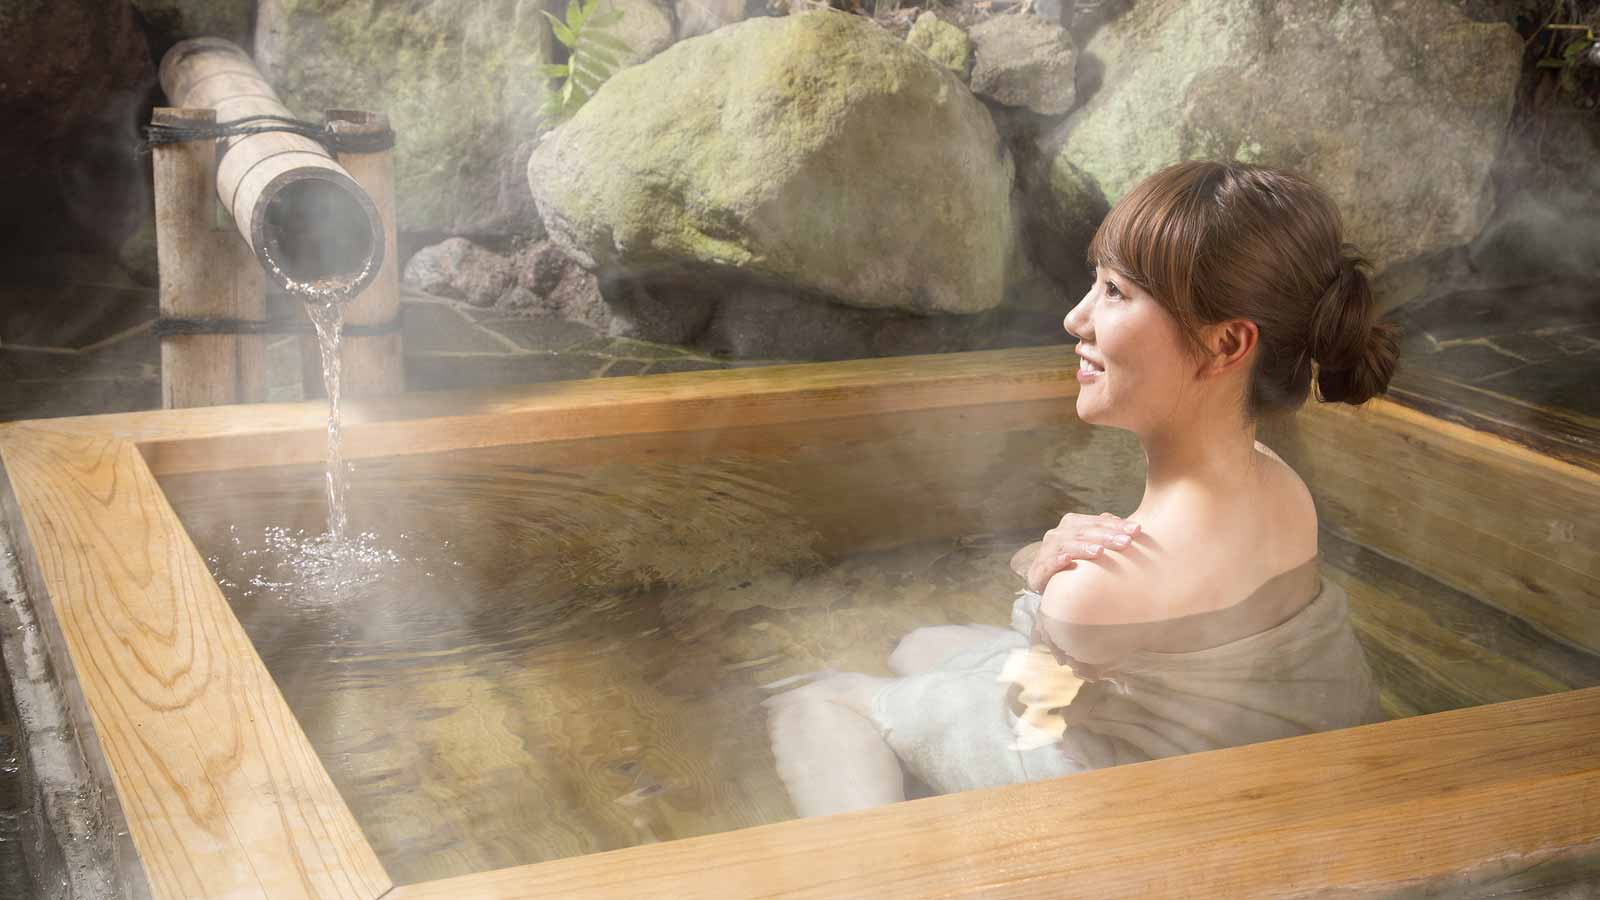 5 Secret Hot Springs You'll Want to Keep All to Yourself